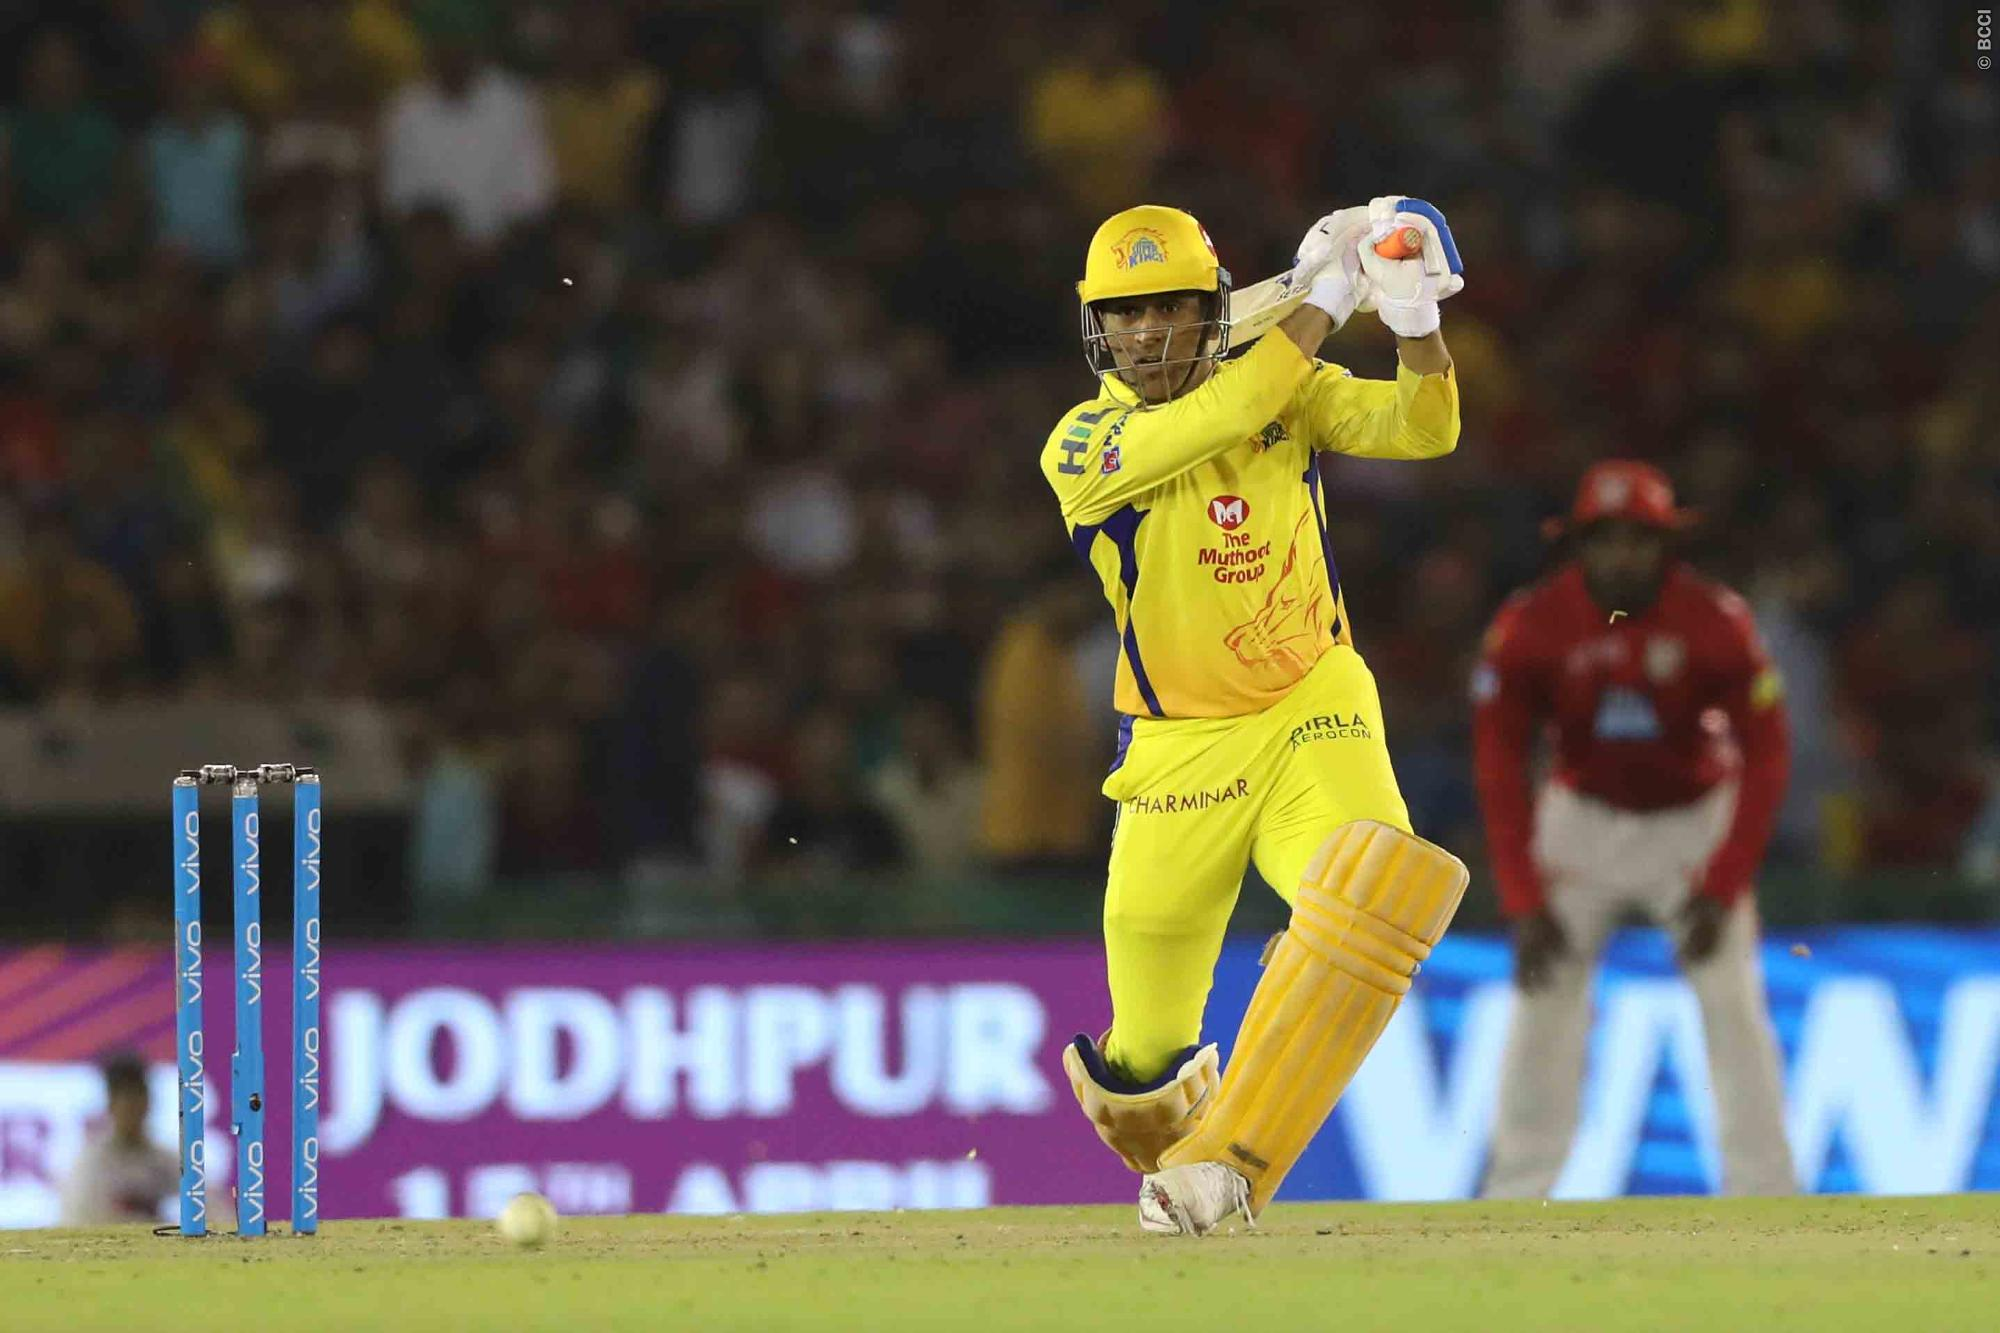 MS Dhoni playing for chennai super kings